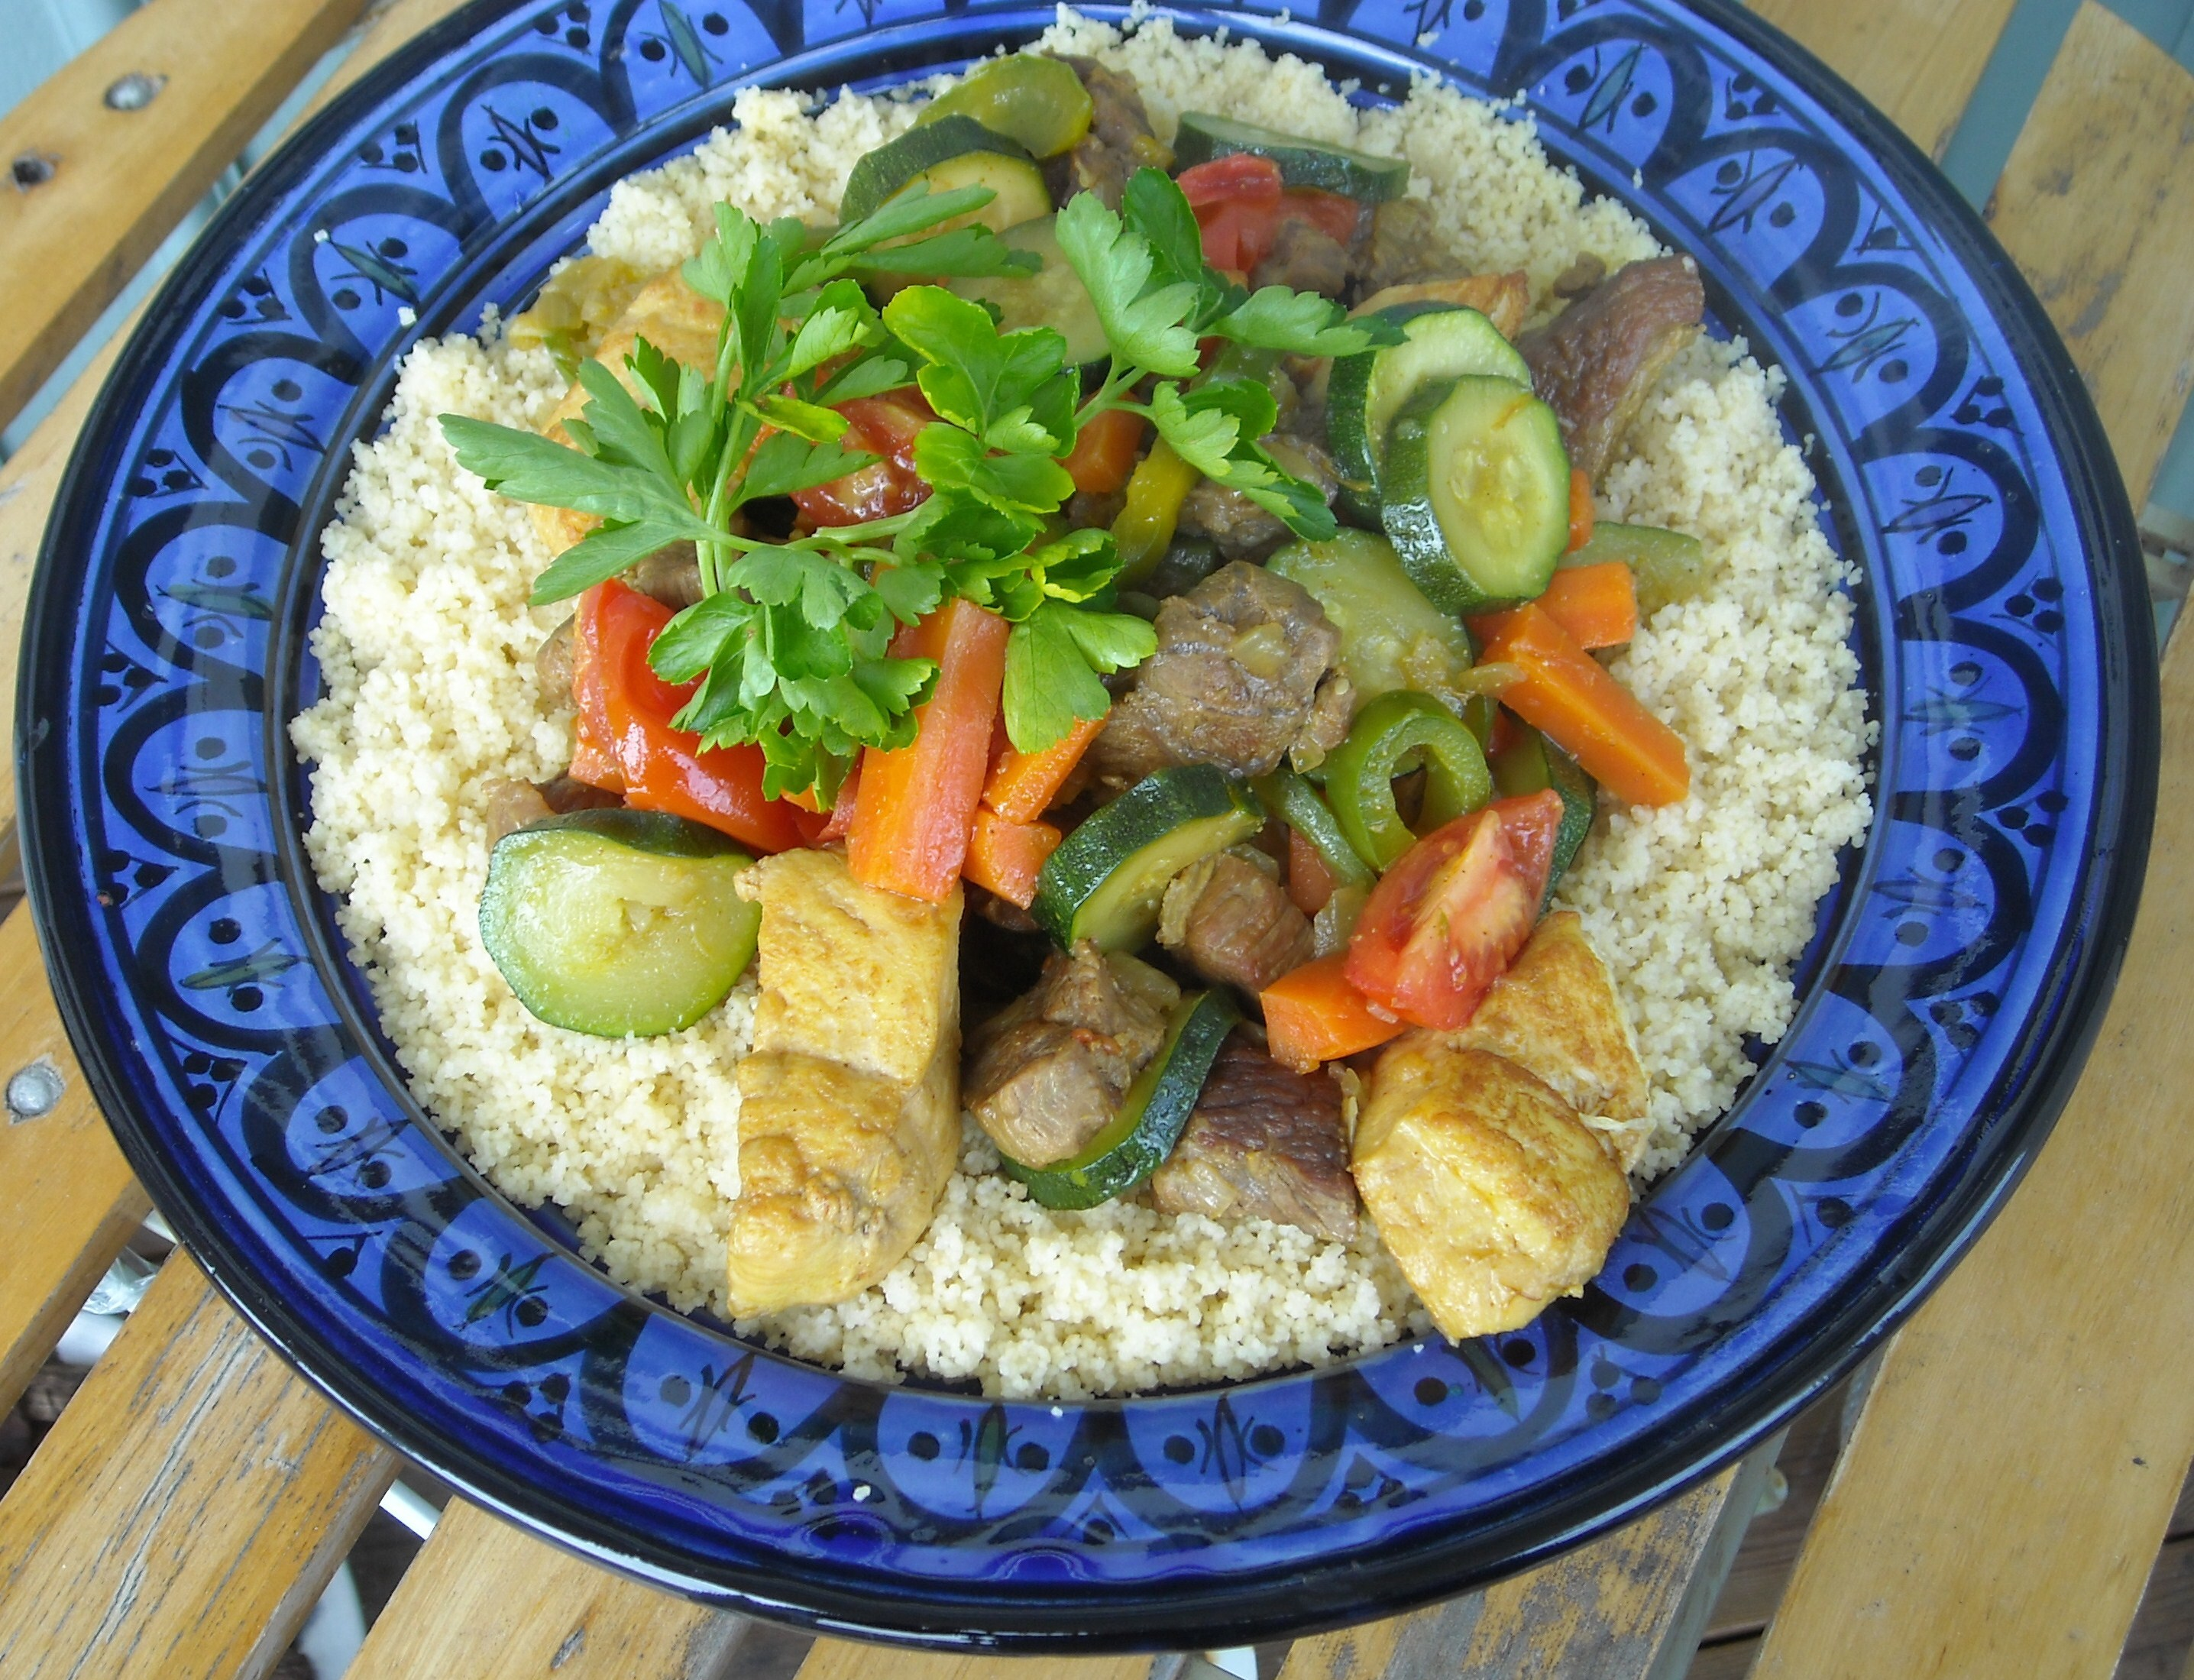 Couscous Marrakech